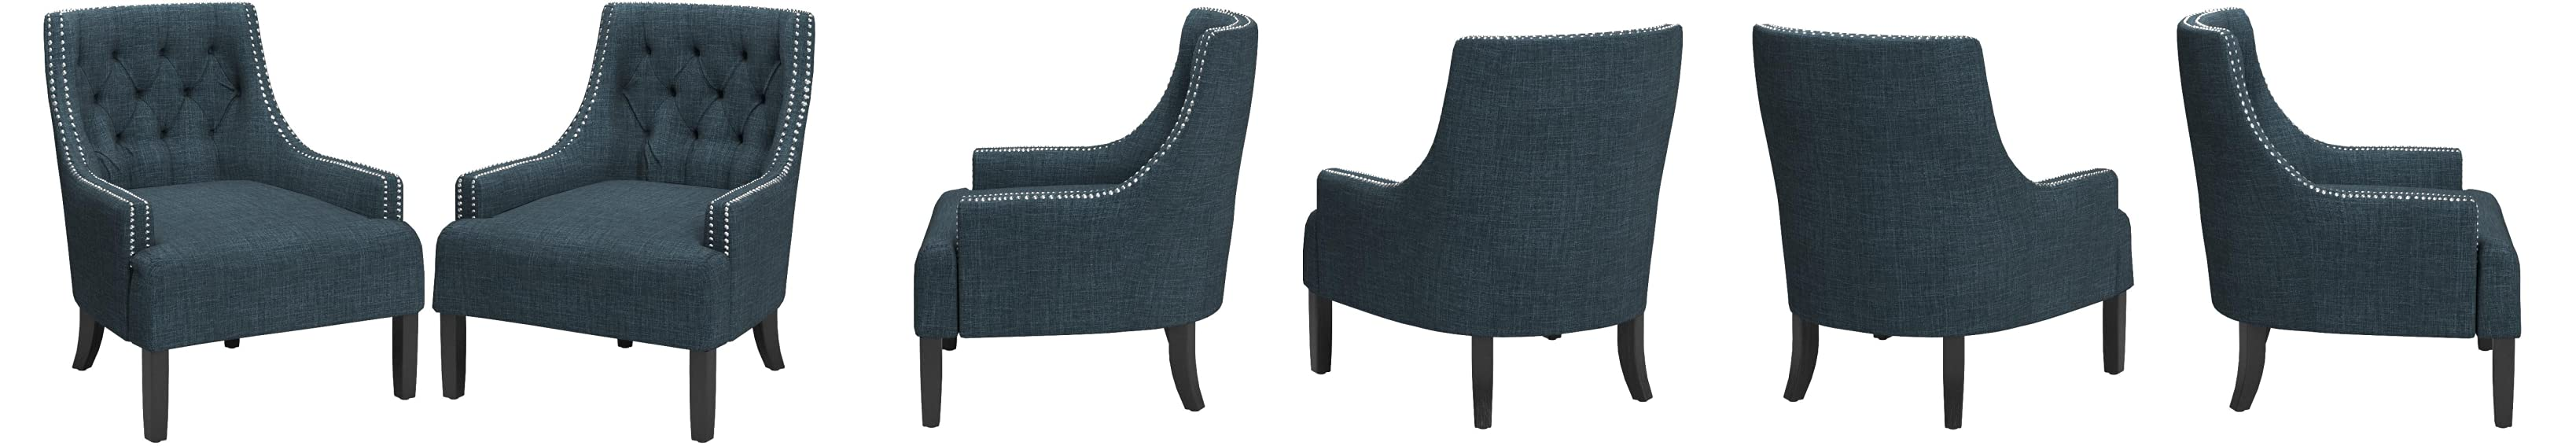 Magnificent Charisma Indigo Accent Chair Creativecarmelina Interior Chair Design Creativecarmelinacom